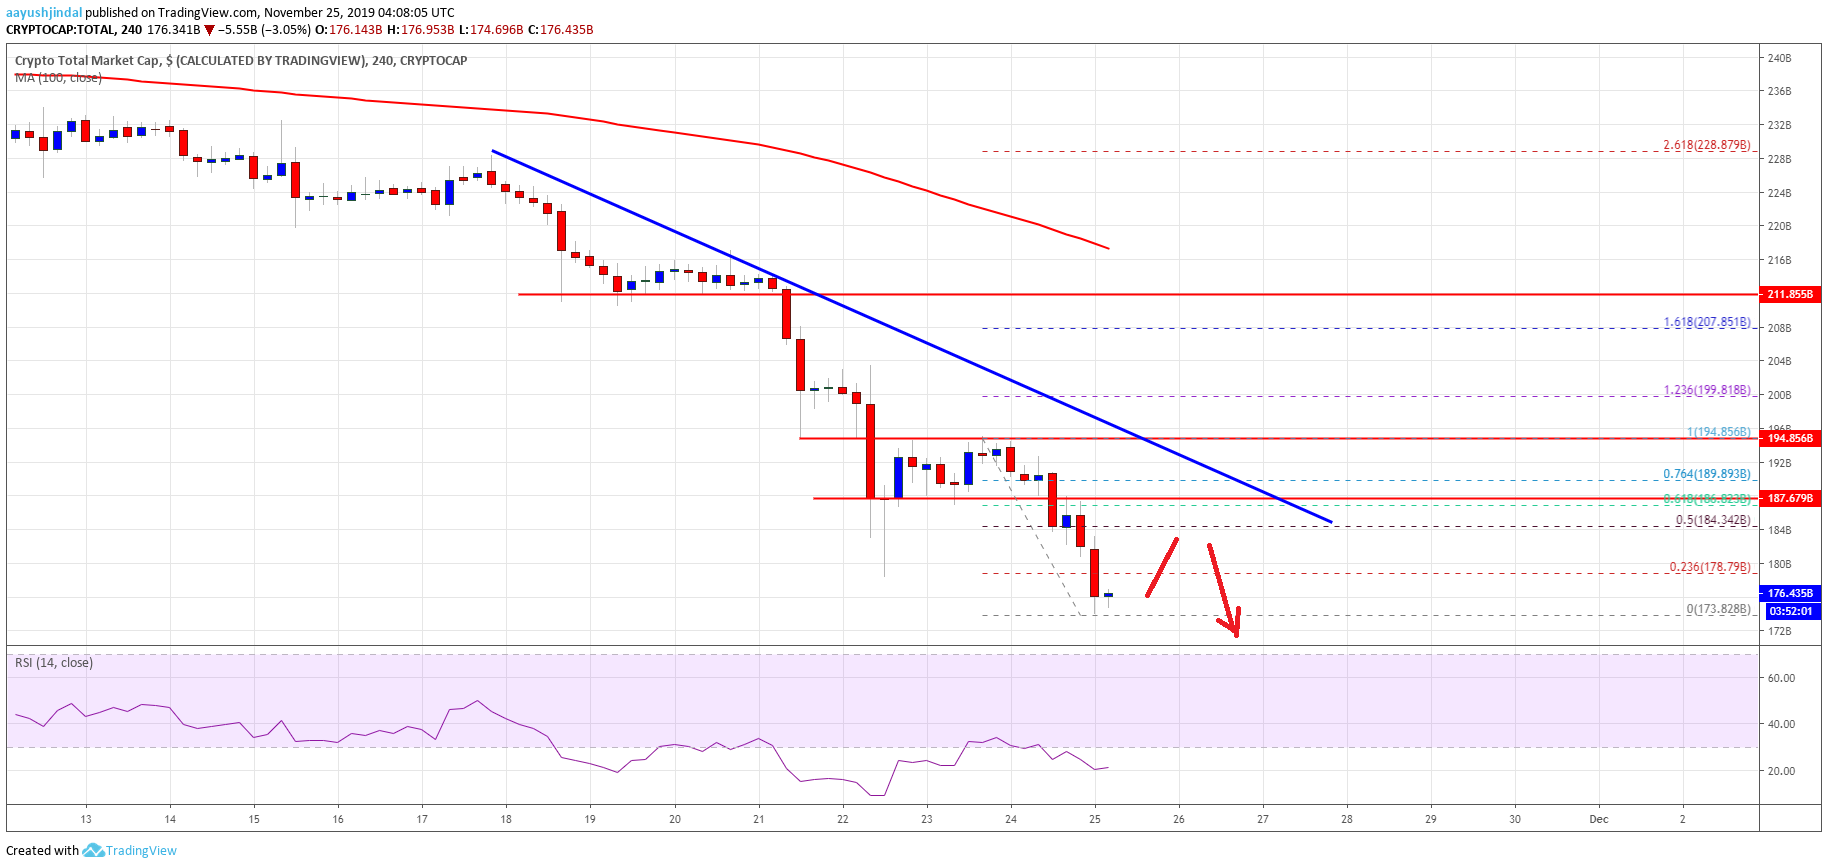 Bitcoin And Crypto Market Crashing: BCH, LTC, EOS, ADA Analysis